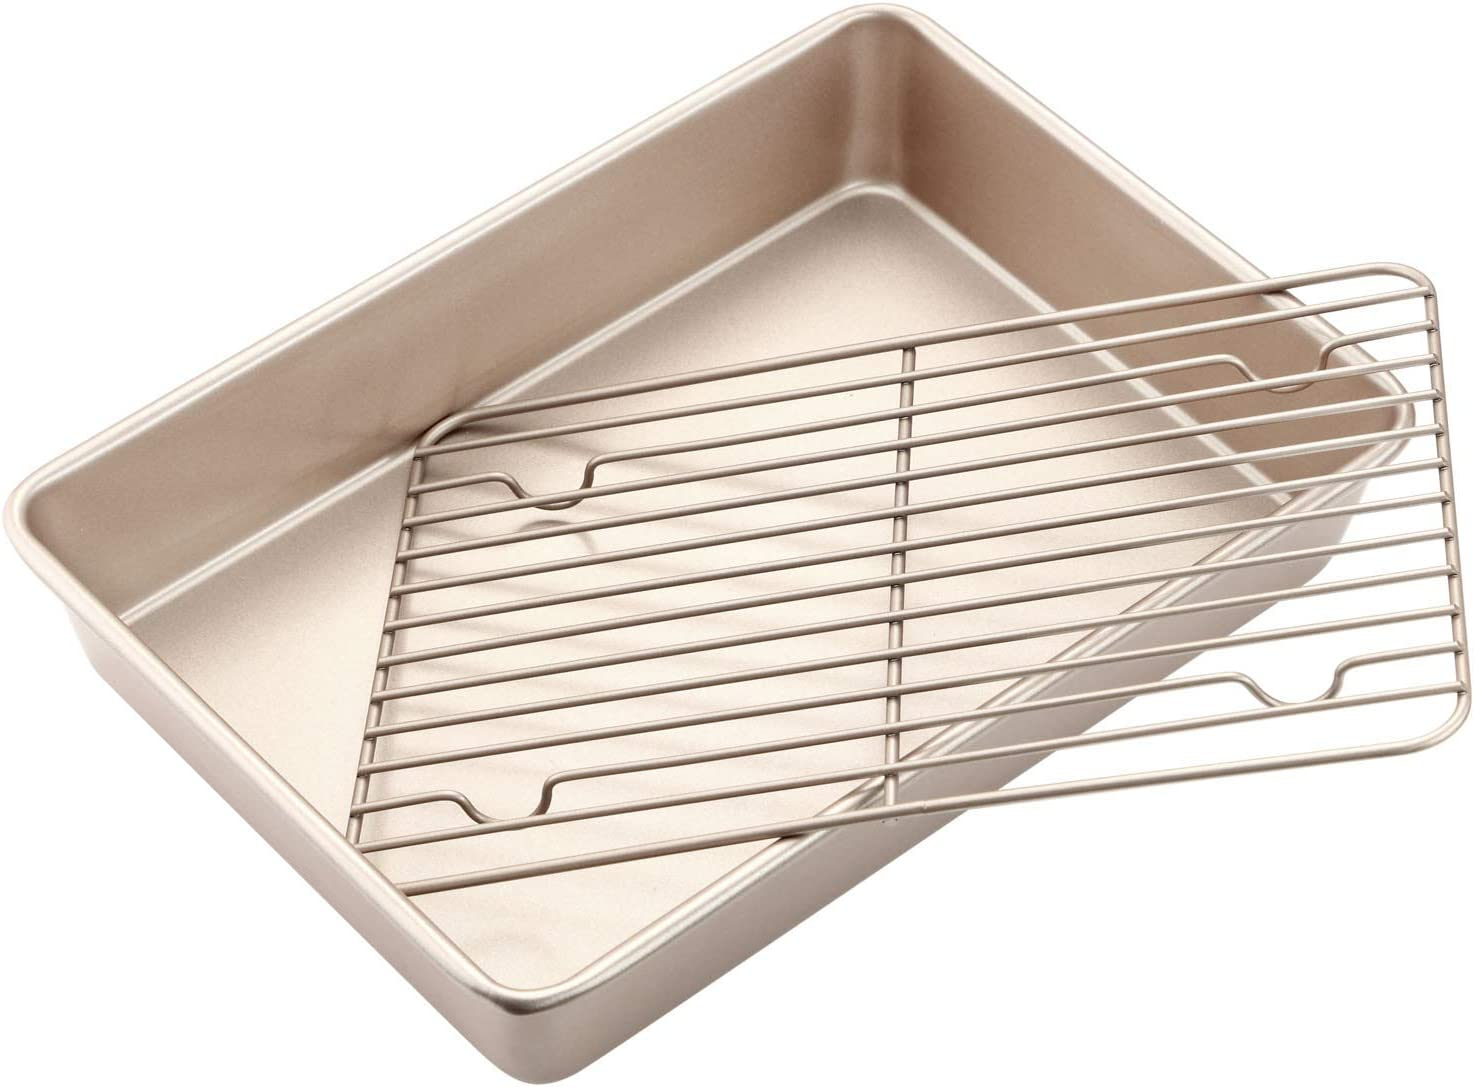 CHEFMADE Roasting Pan with Rack, 13-Inch Non-Stick Rectangular Deep Dish Oven-BBQ Bakeware for Oven Baking 9